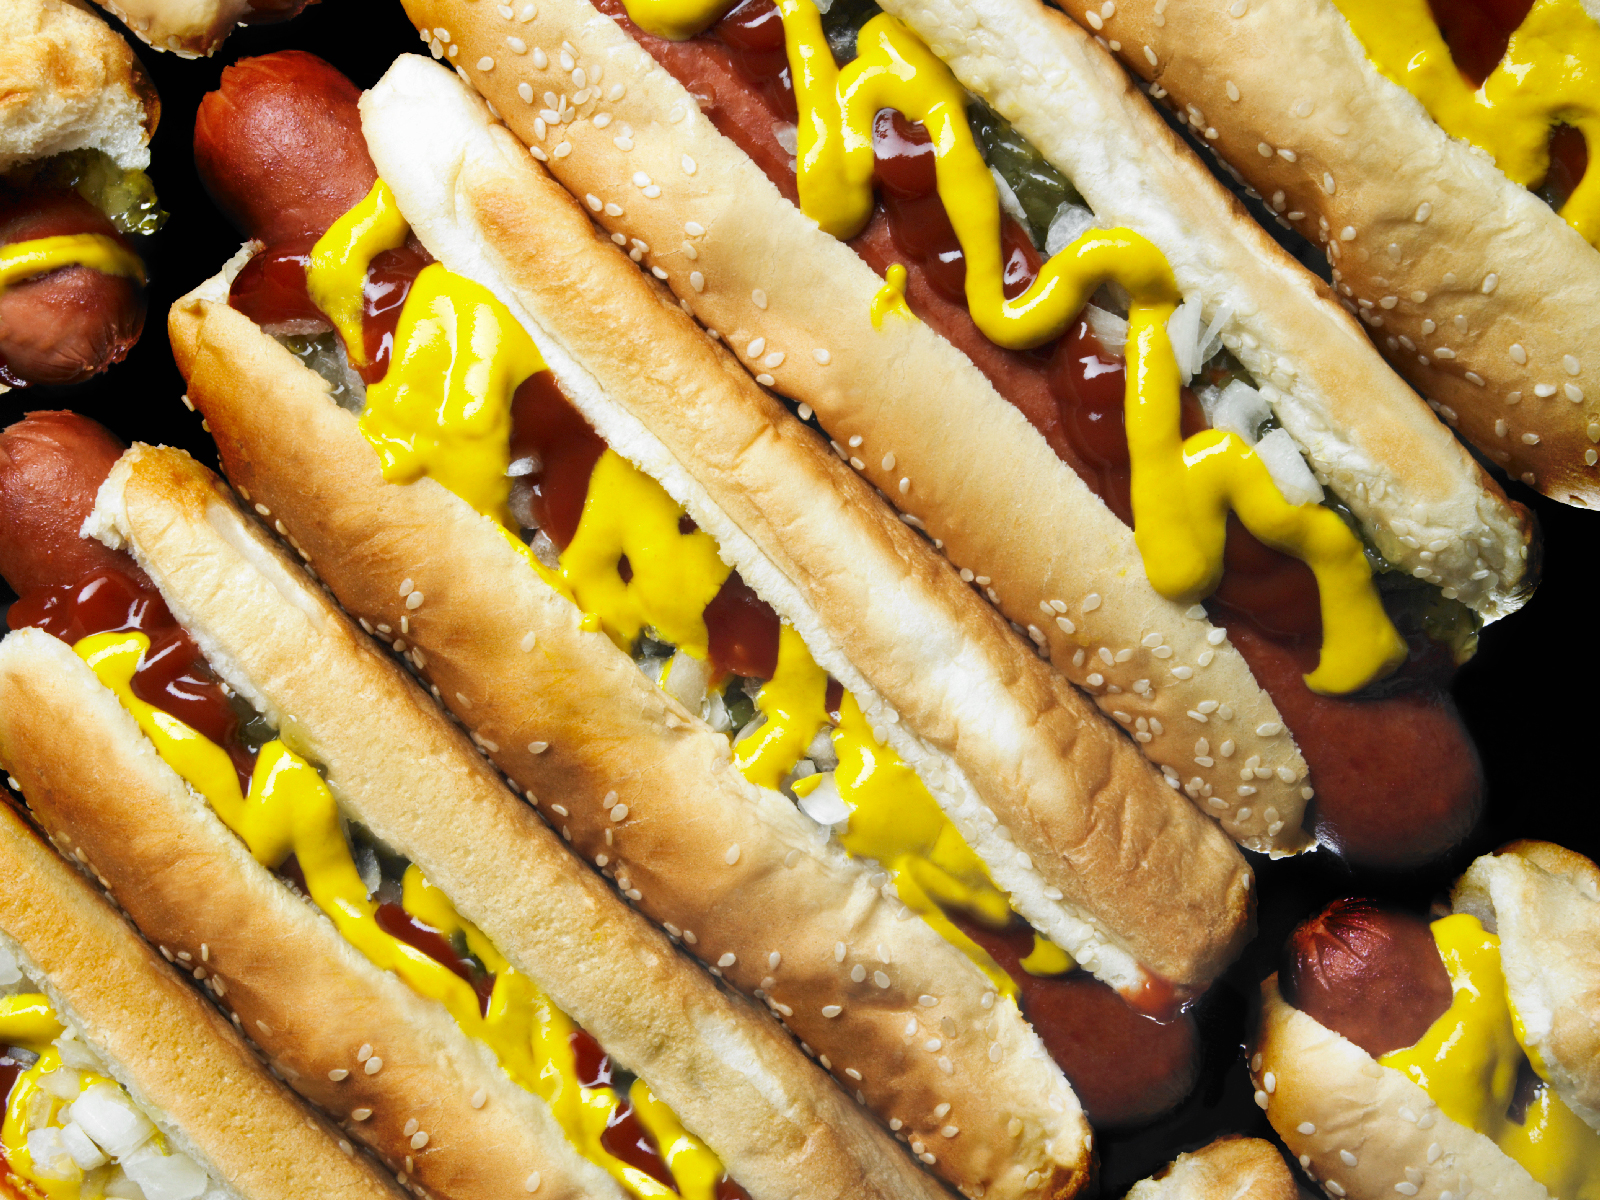 Americans Can't Agree Whether Hot Dogs, Tacos, and Hamburgers are 'Sandwiches' According to a New Poll